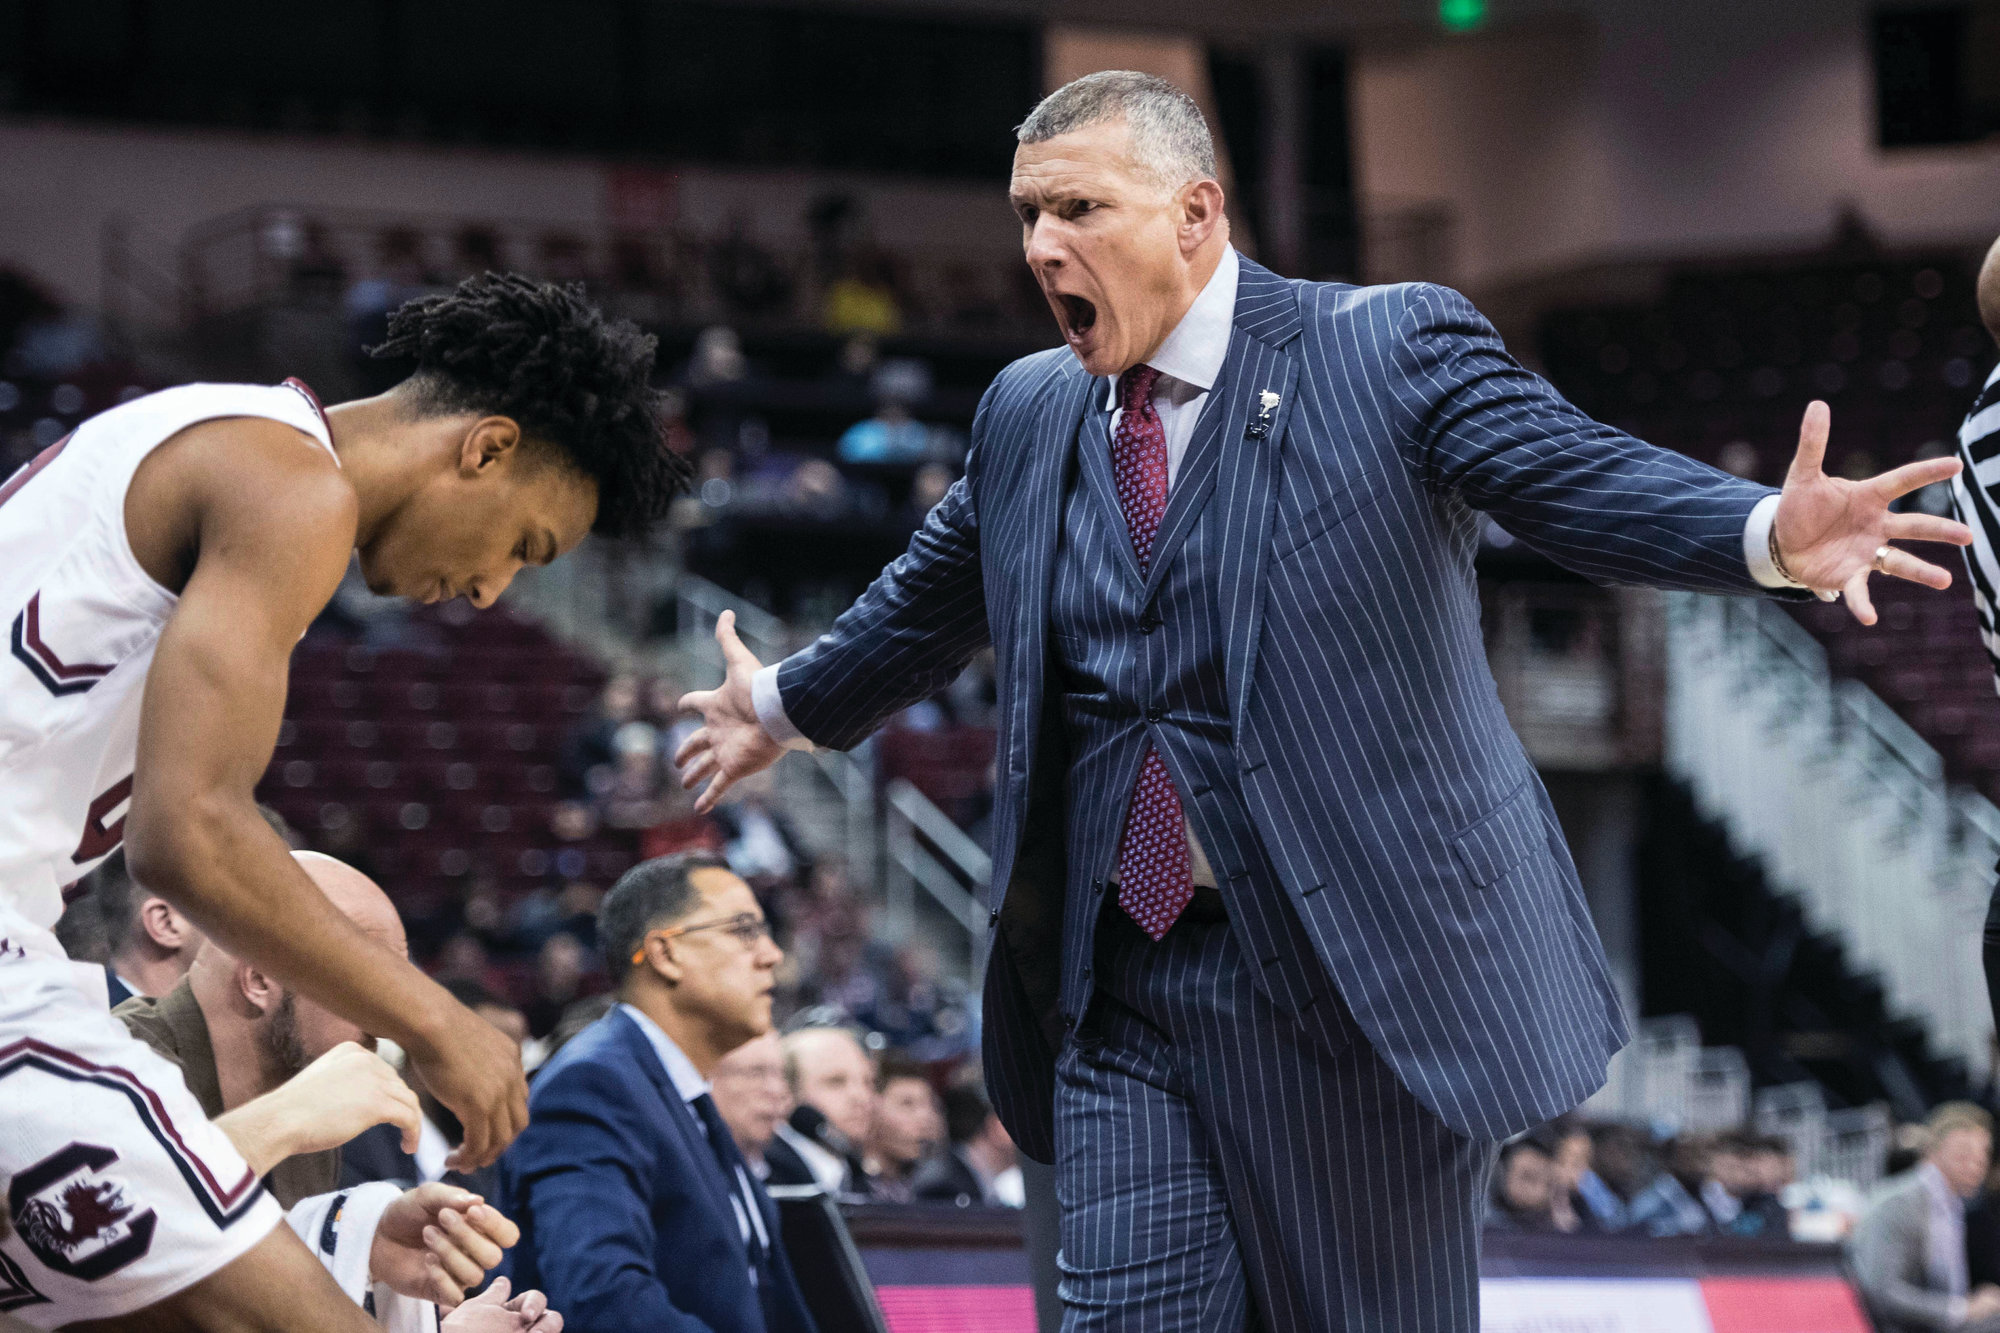 THE ASSOCIATED PRESS  South Carolina head coach Frank Martin, right, has the Gamecocks off to a 3-0 start in the SEC after beating Missouri 85-75 on Sunday at Colonial Life Arena in Columbia.